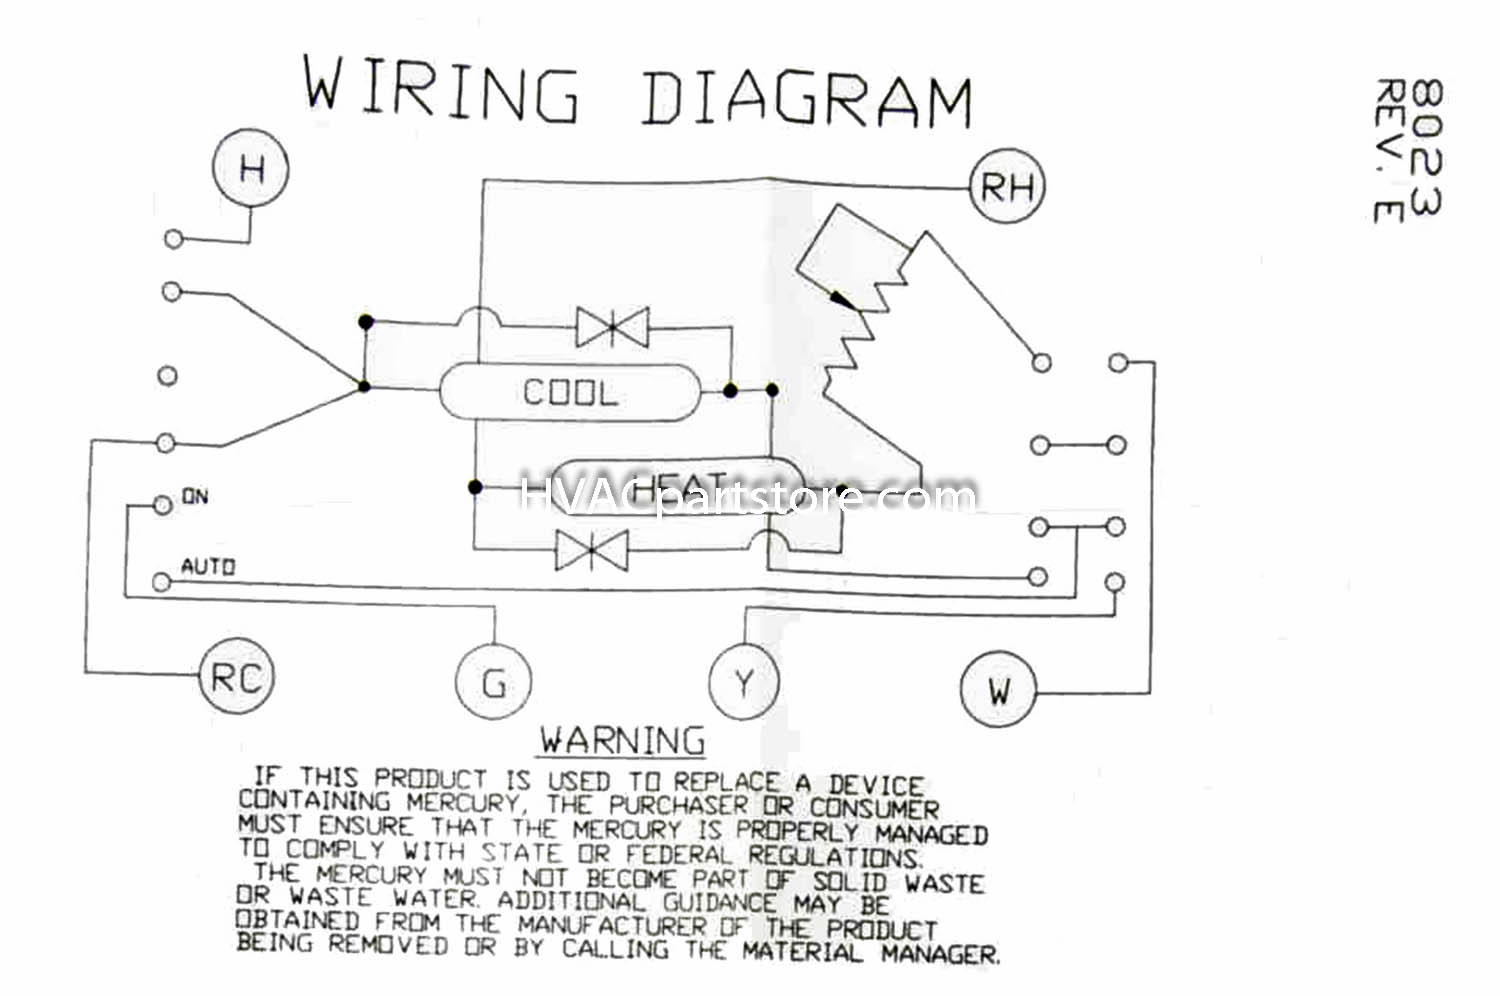 heat pump t stat wiring diagram digital dometic t stat wiring diagram